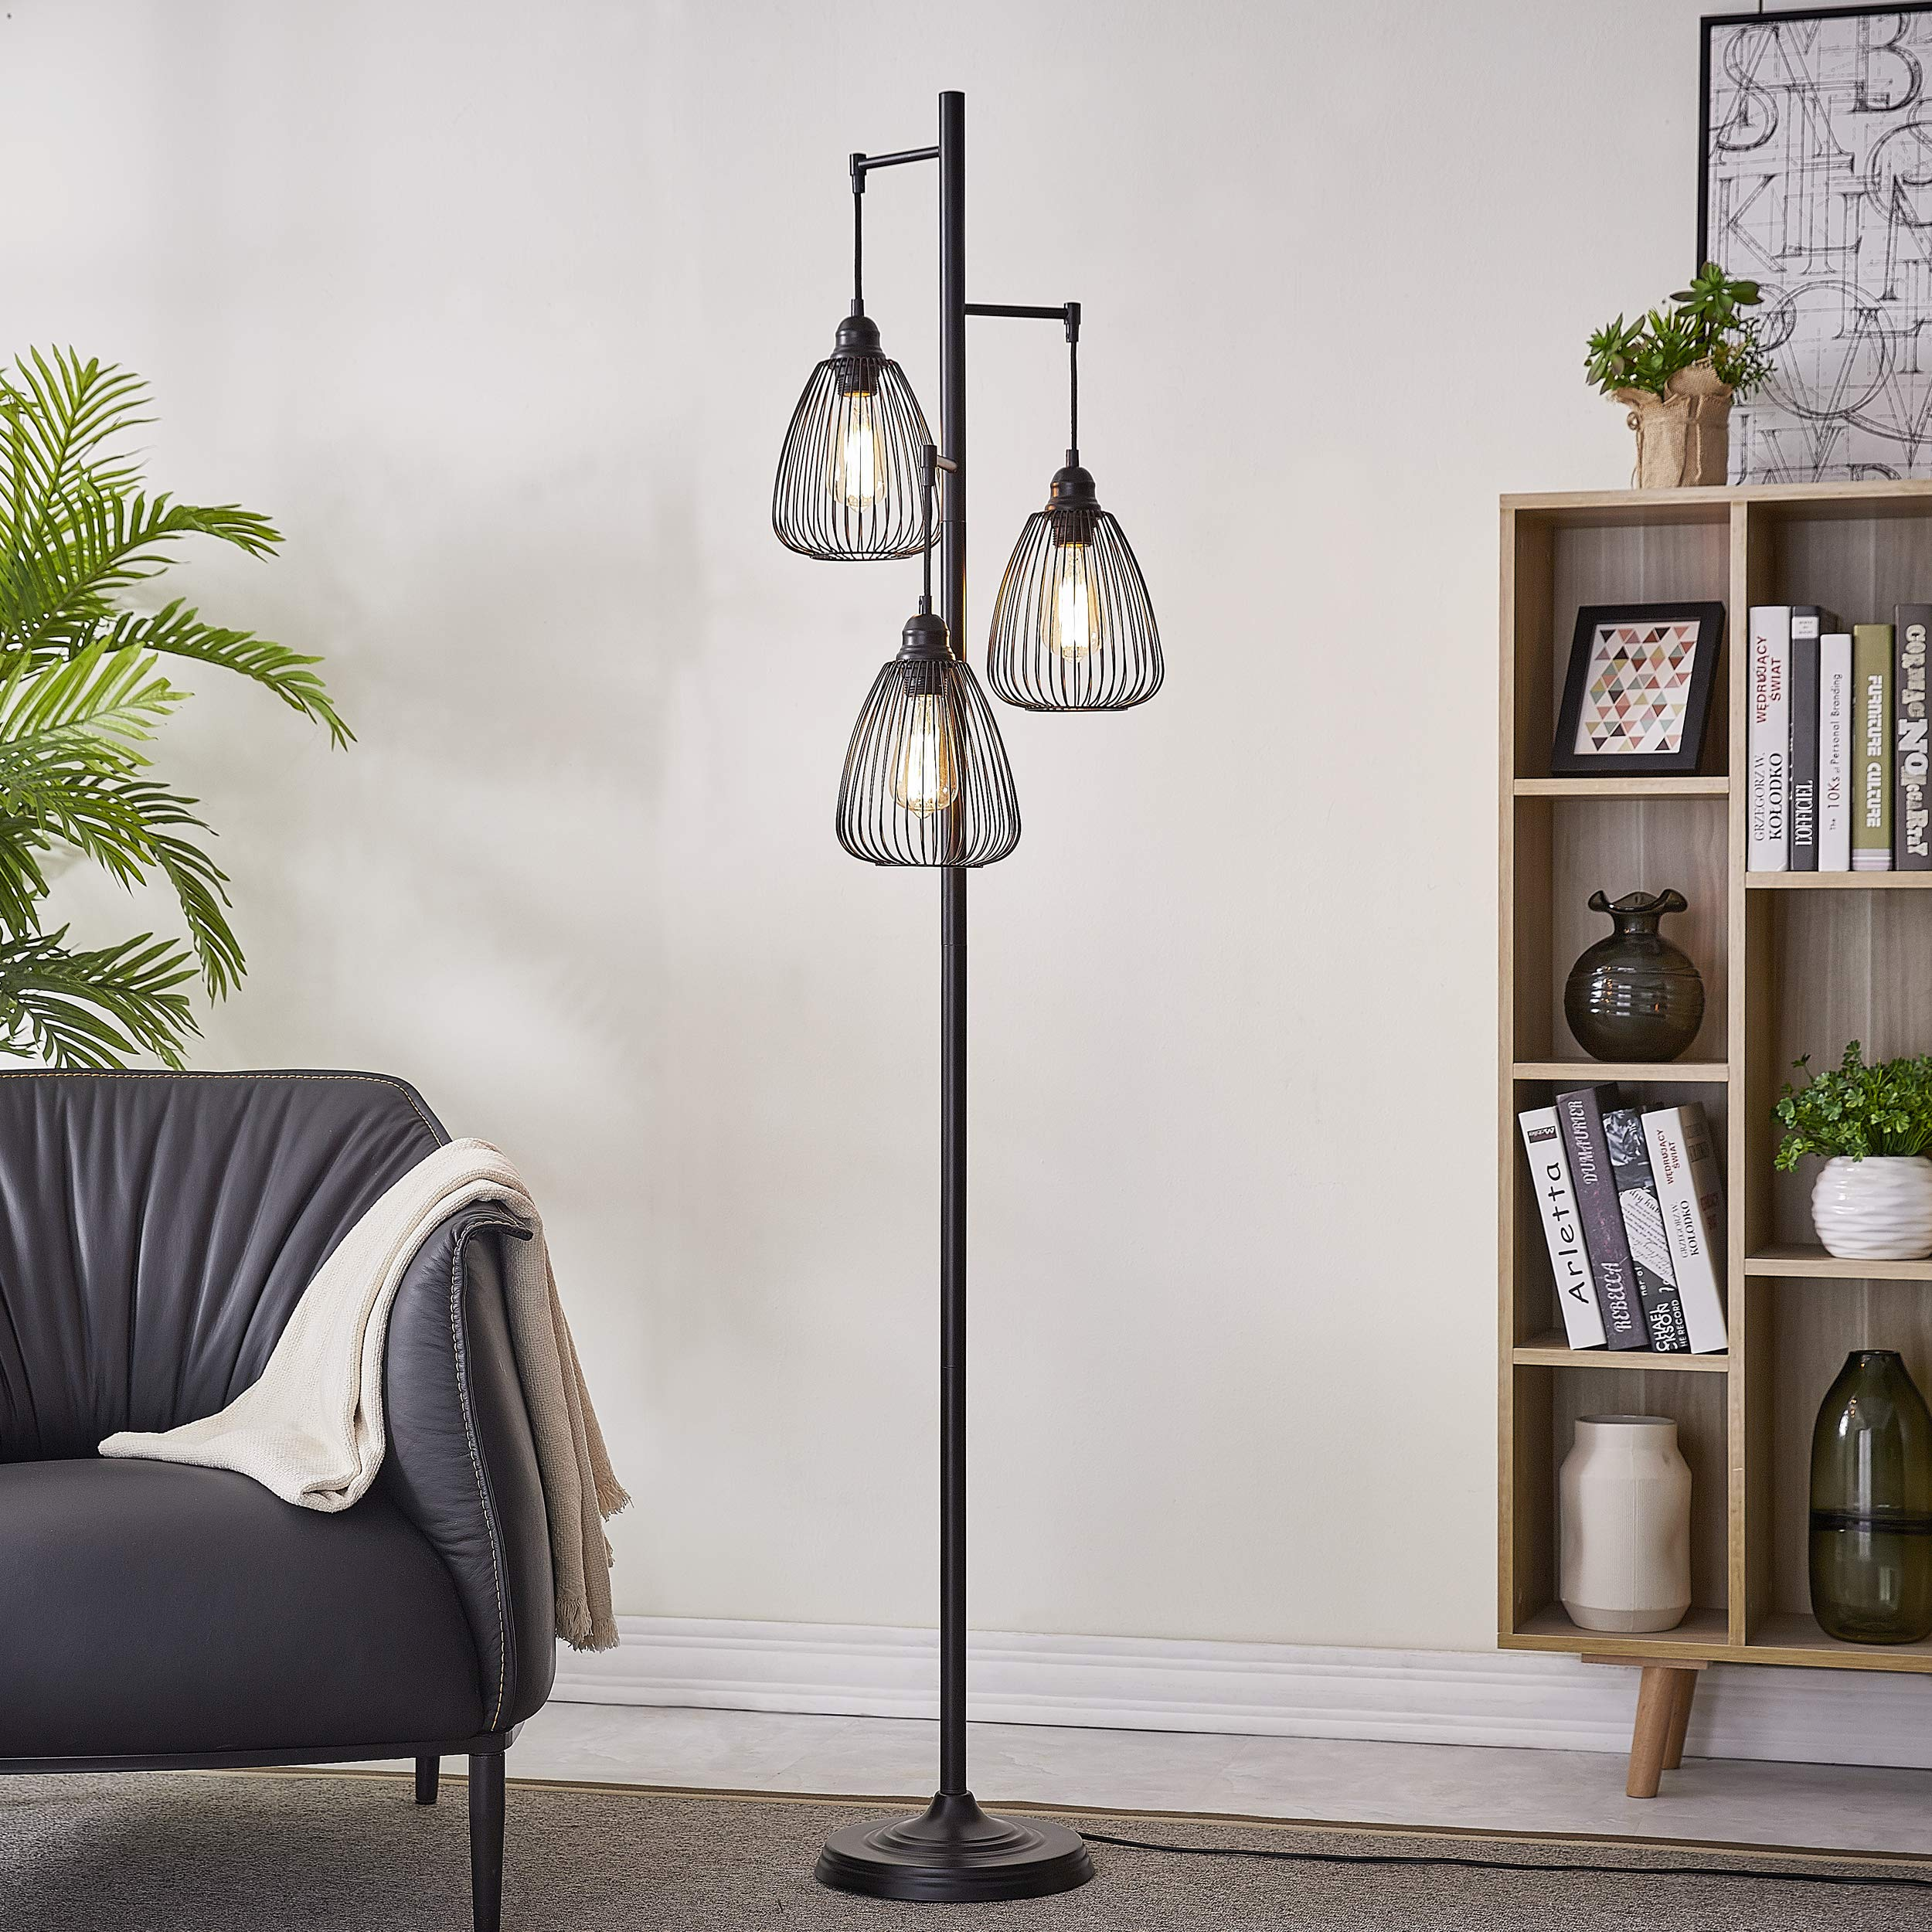 LeeZM Black Industrial Floor Lamp For Living Room Modern Floor Lighting Rustic Tall Stand Up Lamp Vintage Farmhouse Tree Floor Lamps For Bedrooms, Office Torchiere Standing Lamp 3 Light Bulbs Included by LeeZM